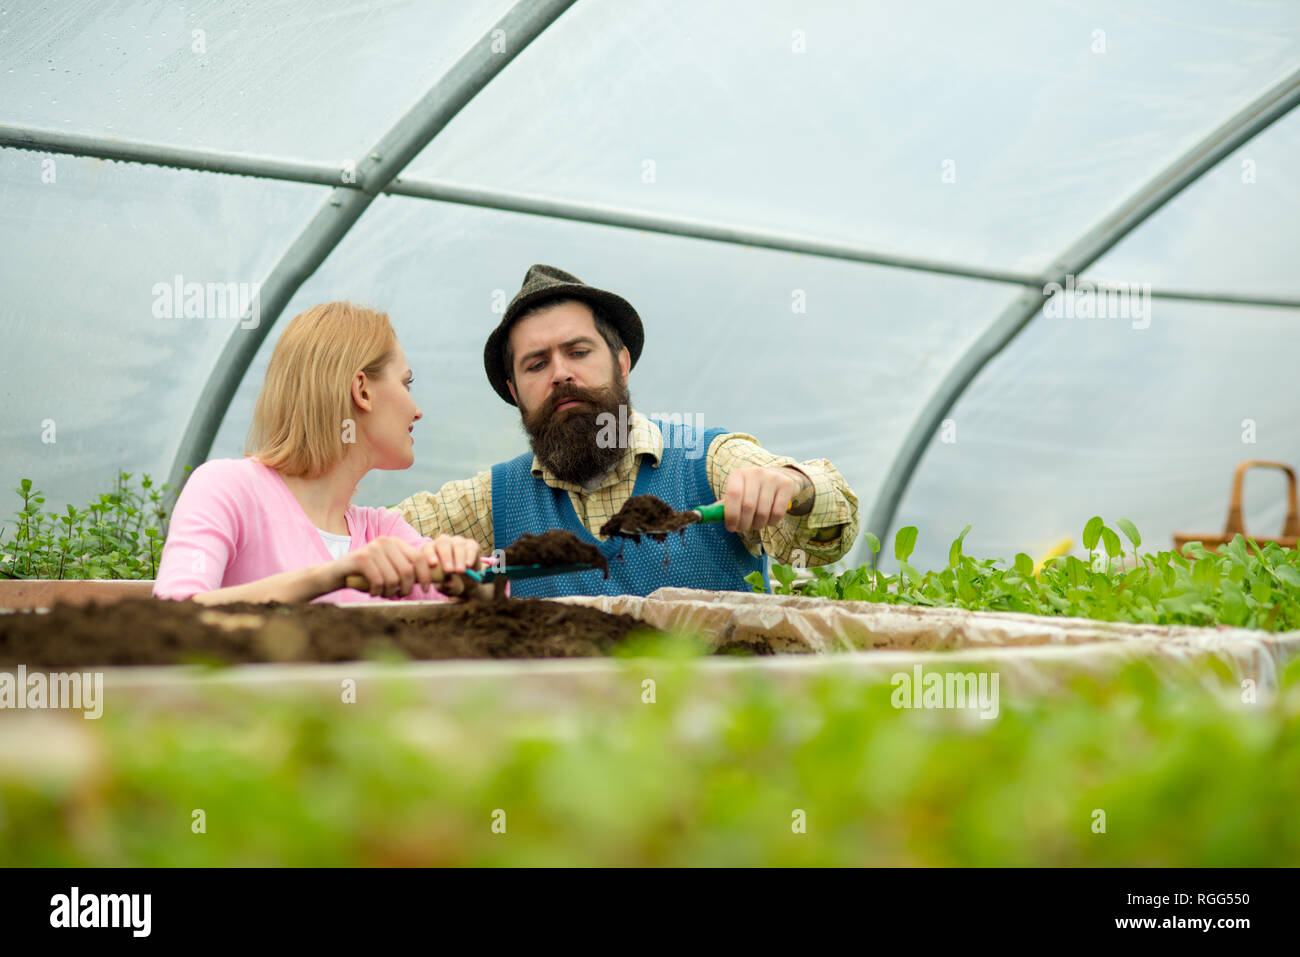 soil enrichment. soil enrichment with organic fertile. soil enrichment concept. soil enrichment by couple of gardeners. living a green life. - Stock Image